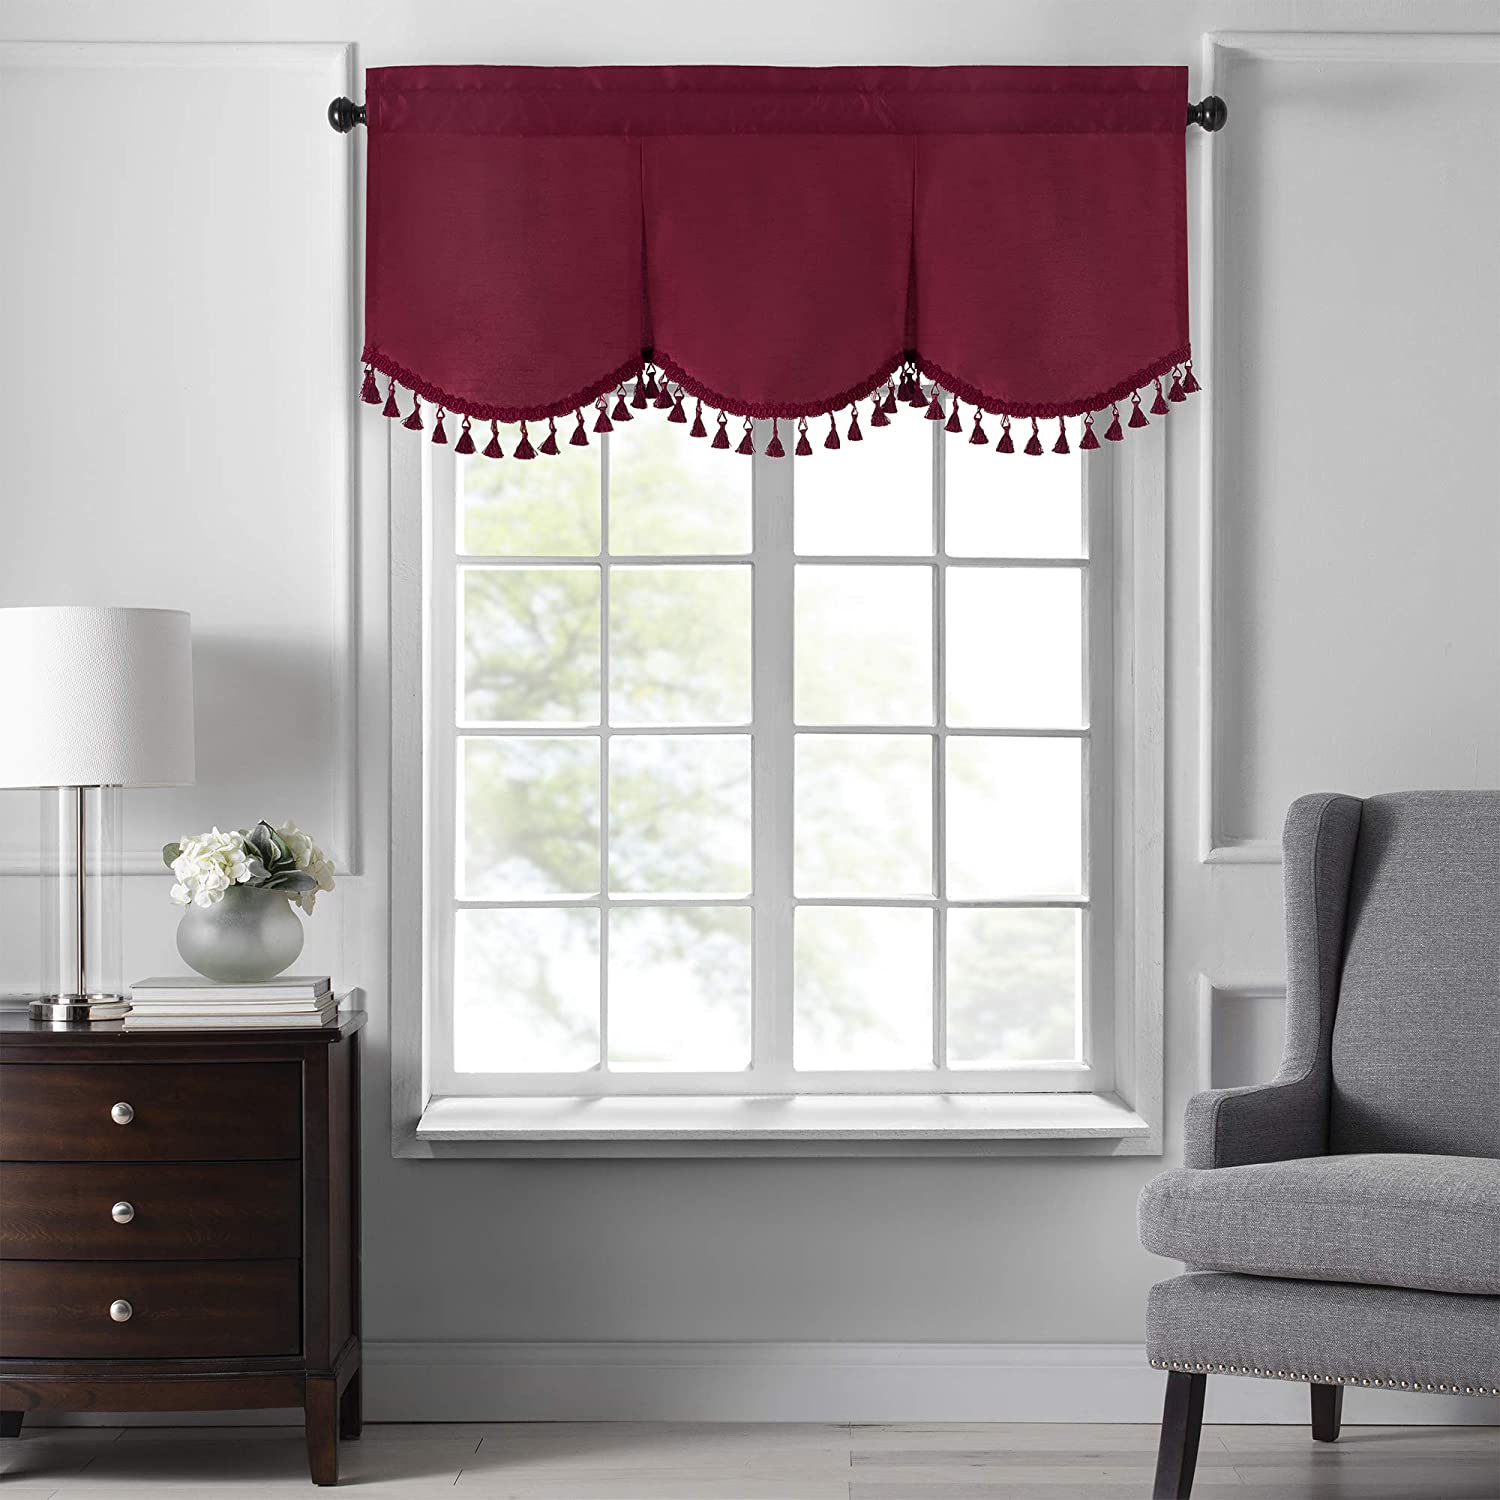 """Elrene Home Fashions Colette Faux Silk Tassel Scallop Window Valance, 48"""" x 21"""", Red"""